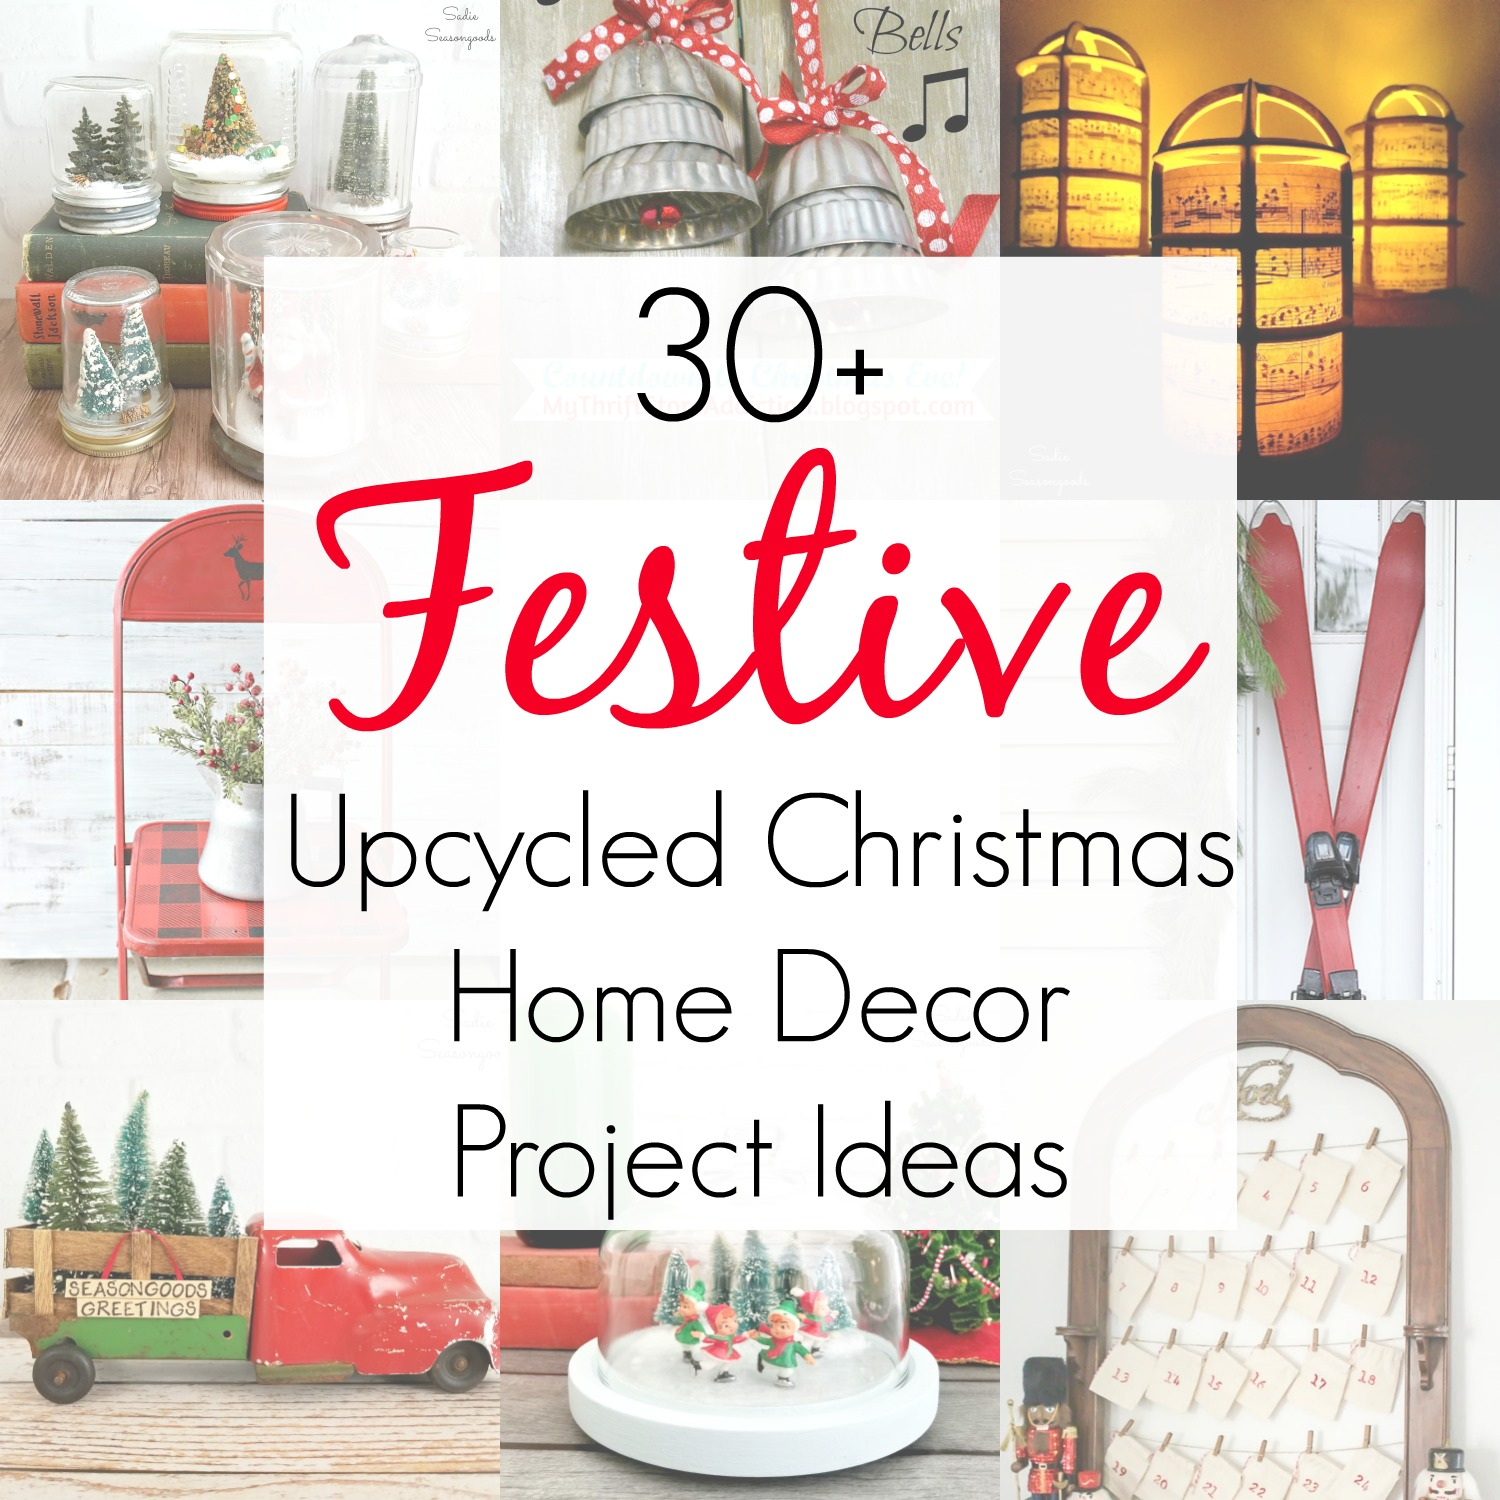 30 Upcycled Christmas Home Decor Project Ideas